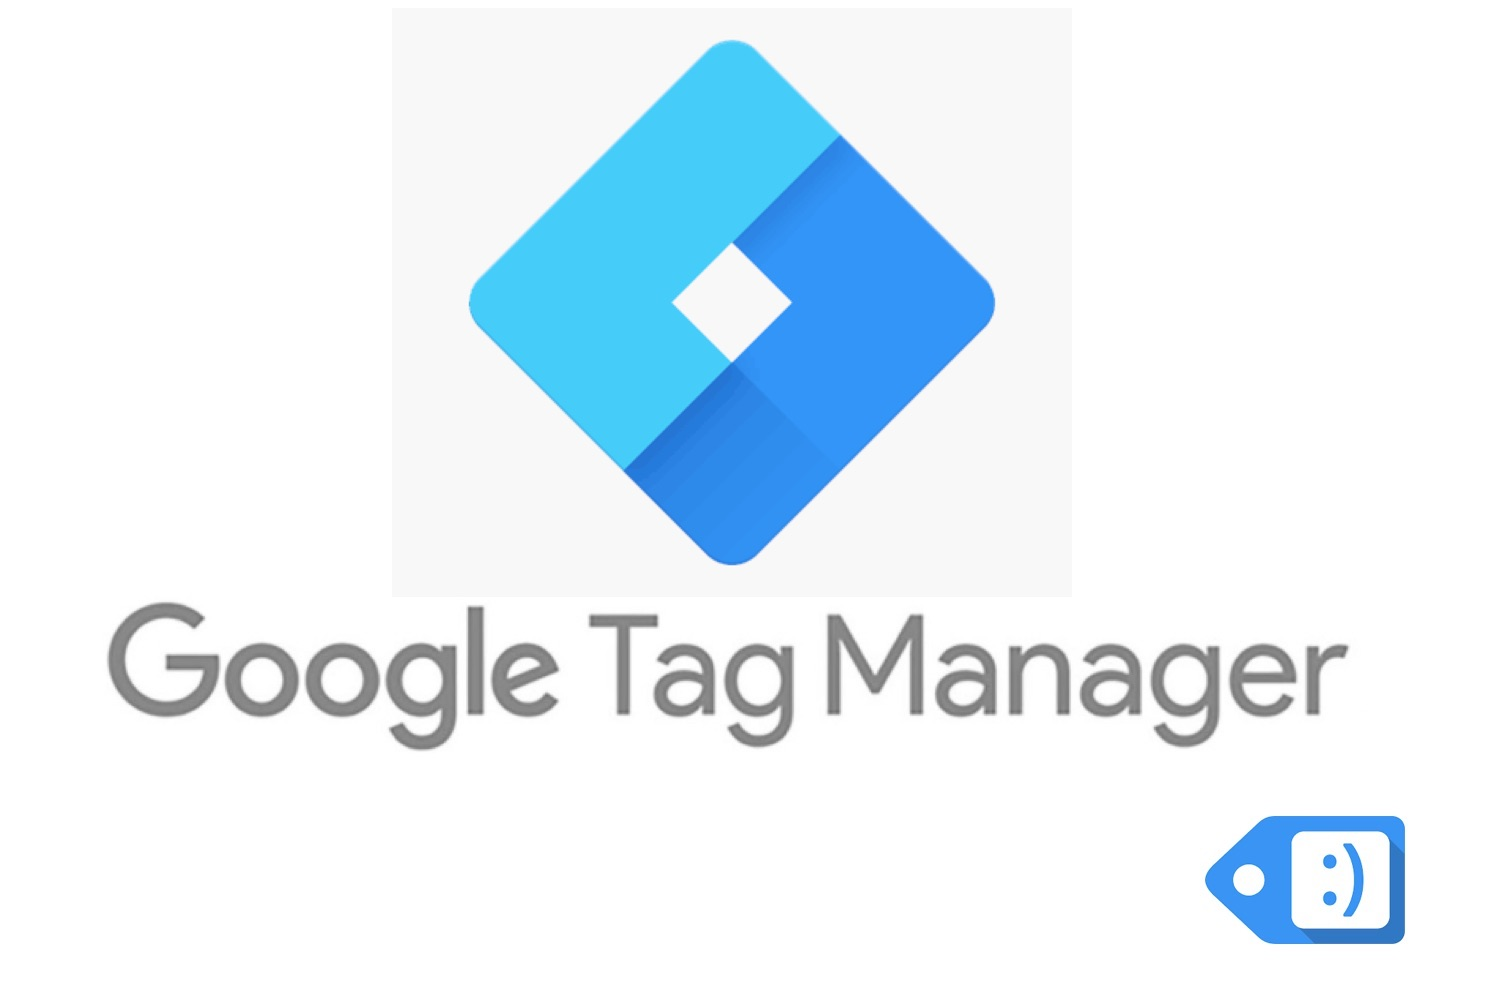 google tag manager, que es google tag mnager